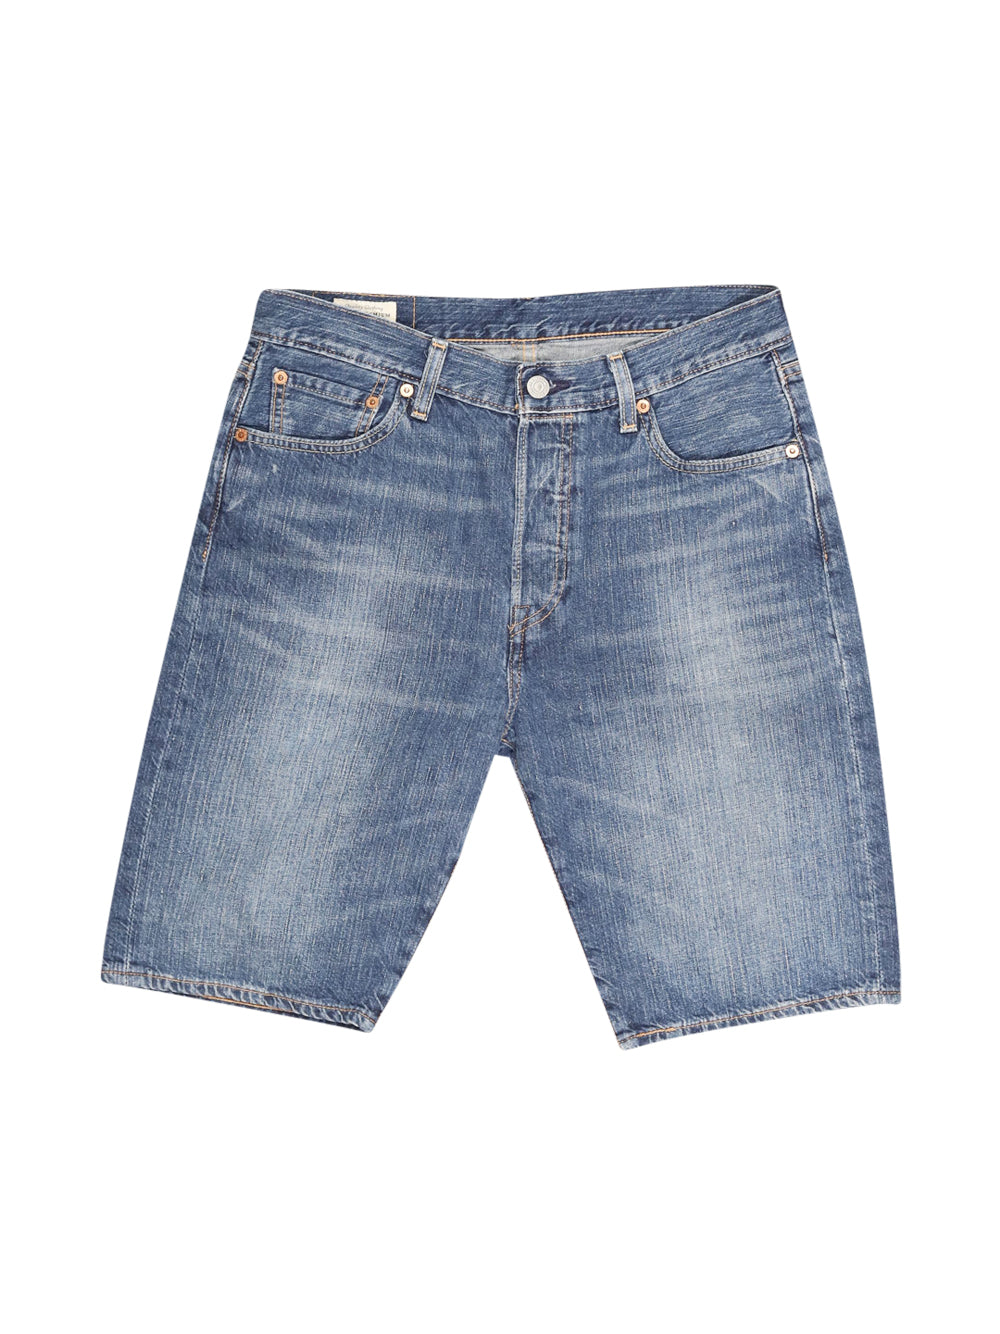 Front photo of Preloved Levi's Blue Man's shorts - size 38/M